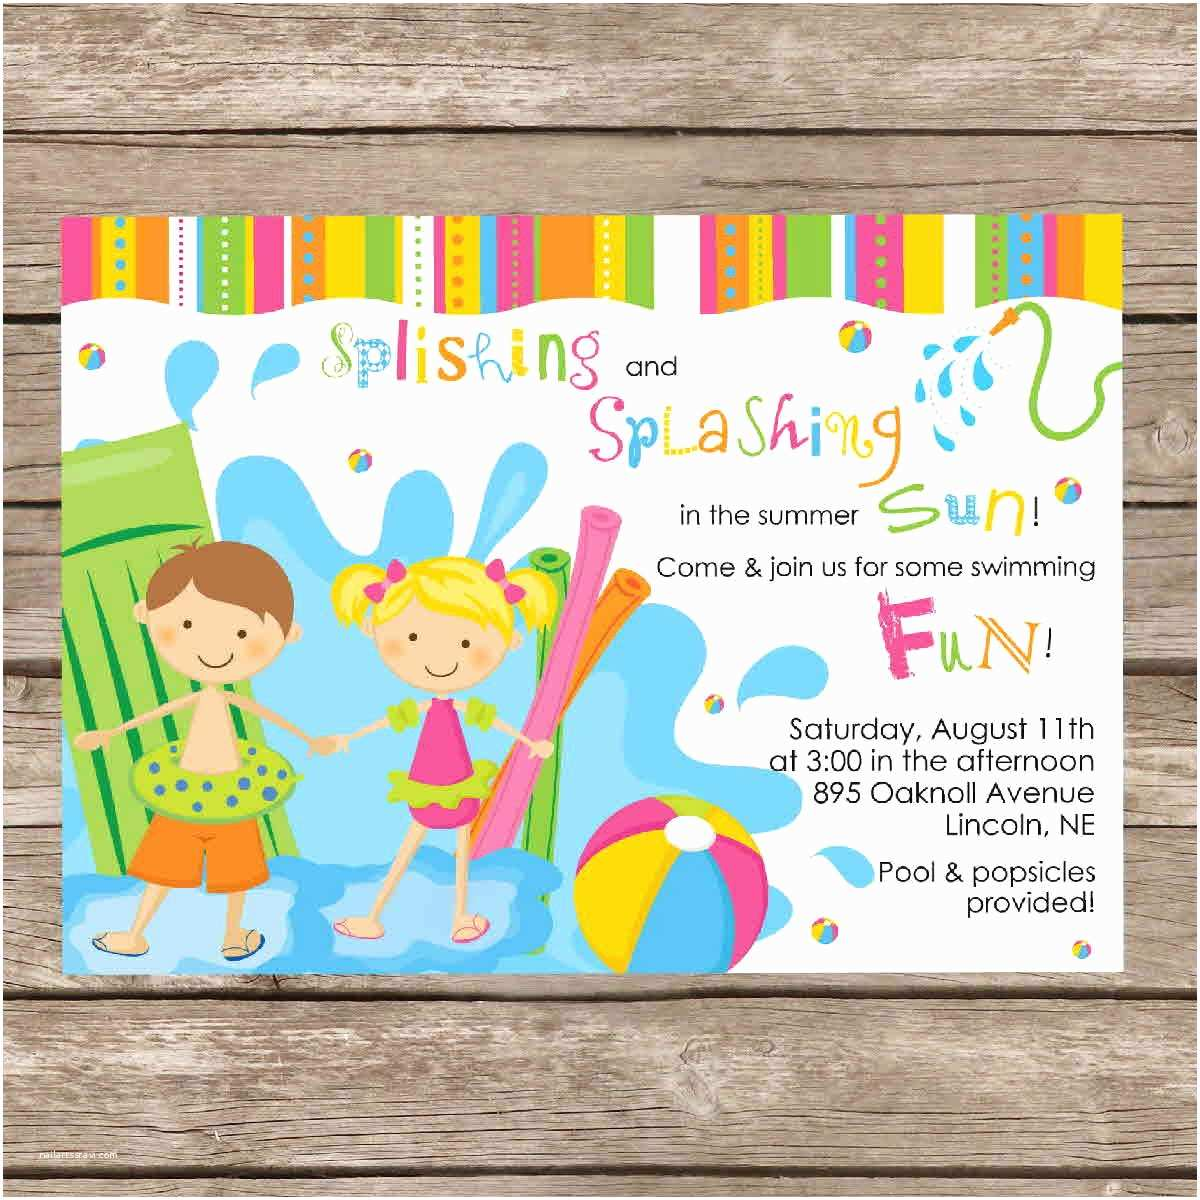 Swimming Party Invitations Funny Beach and Pool Invitation Card Design Ideas to